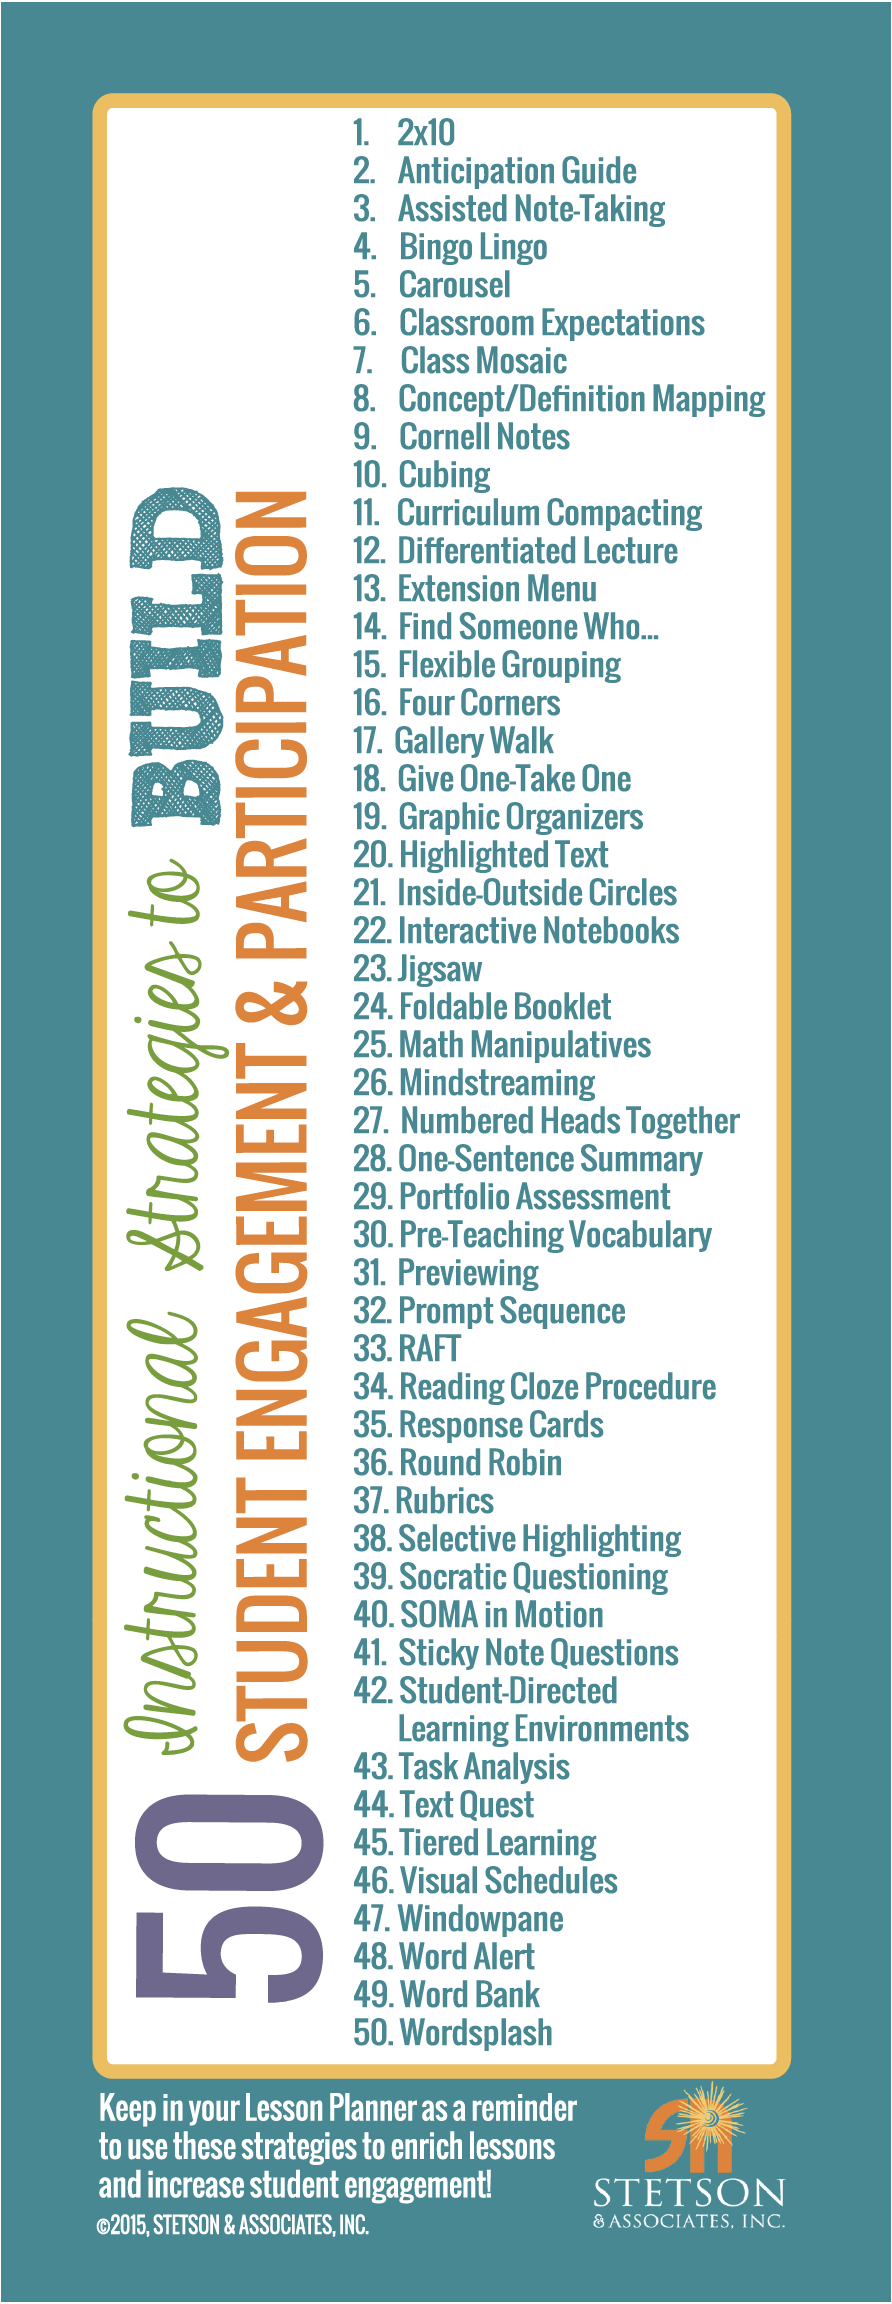 50 Instructional Strategies to Build Student Engagement & Participation Bookmark 0000002